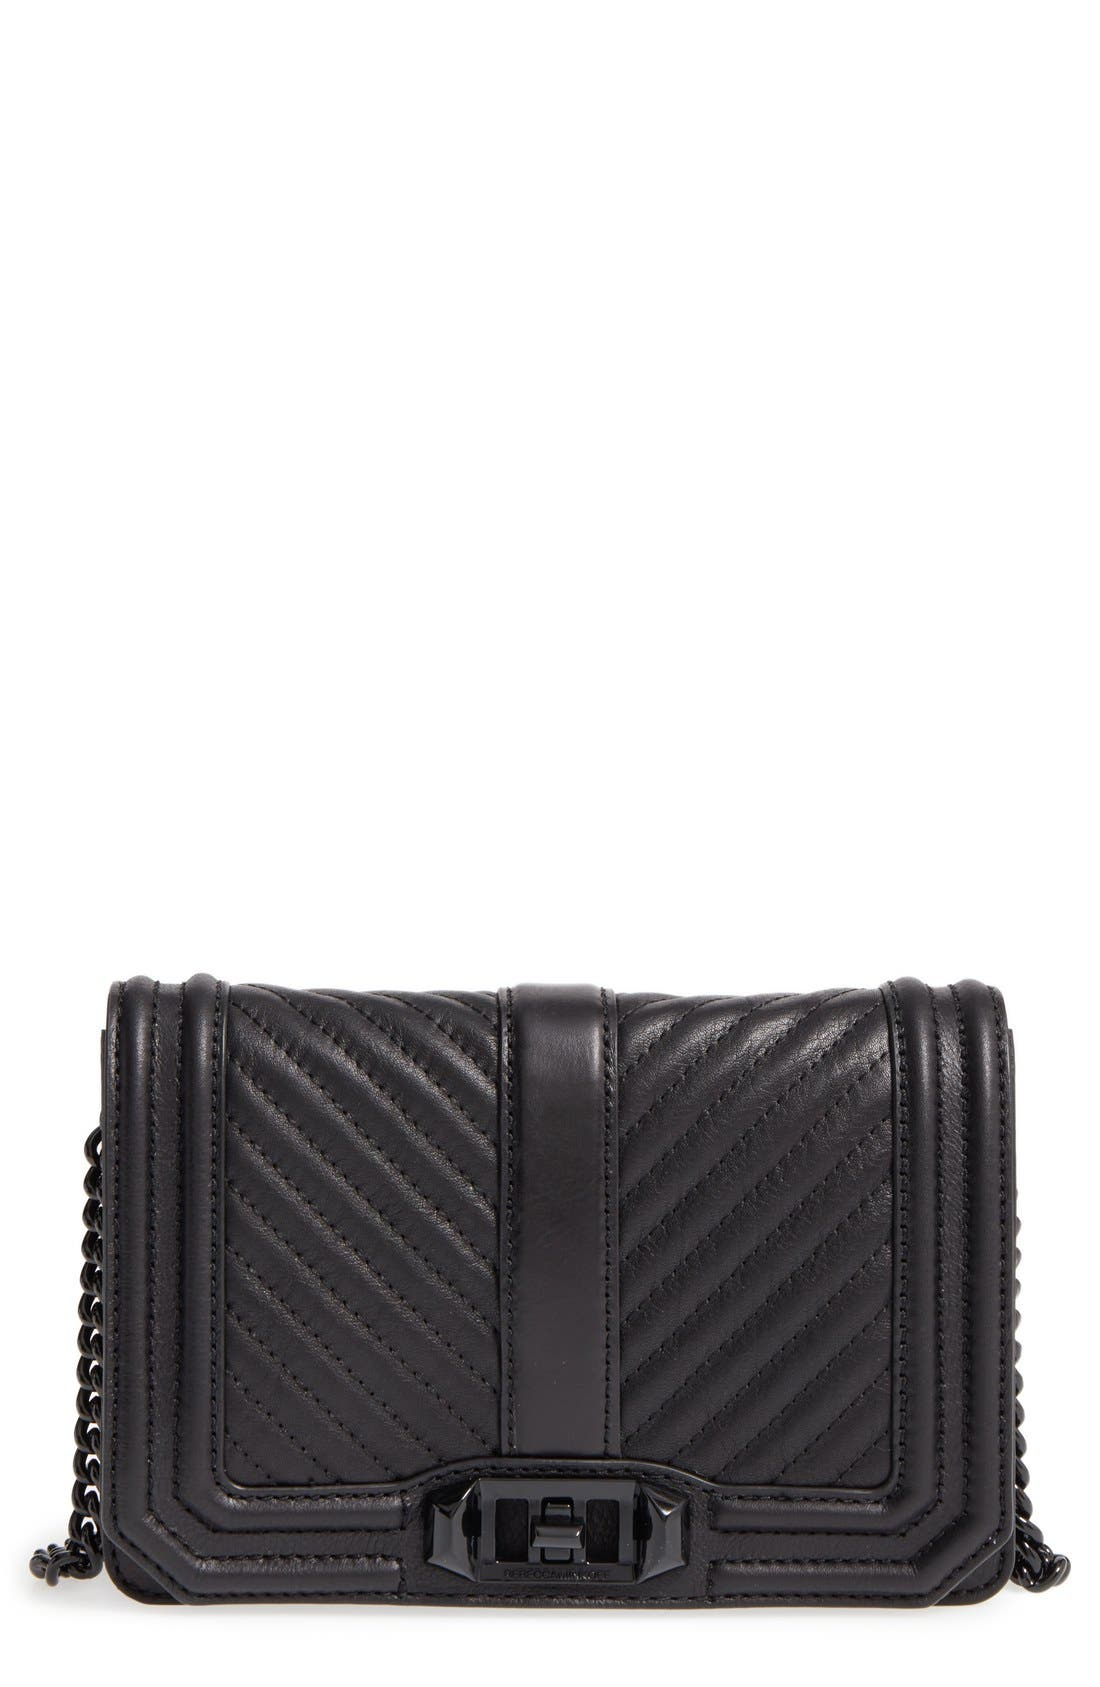 Main Image - Rebecca Minkoff Small Love Leather Crossbody Bag